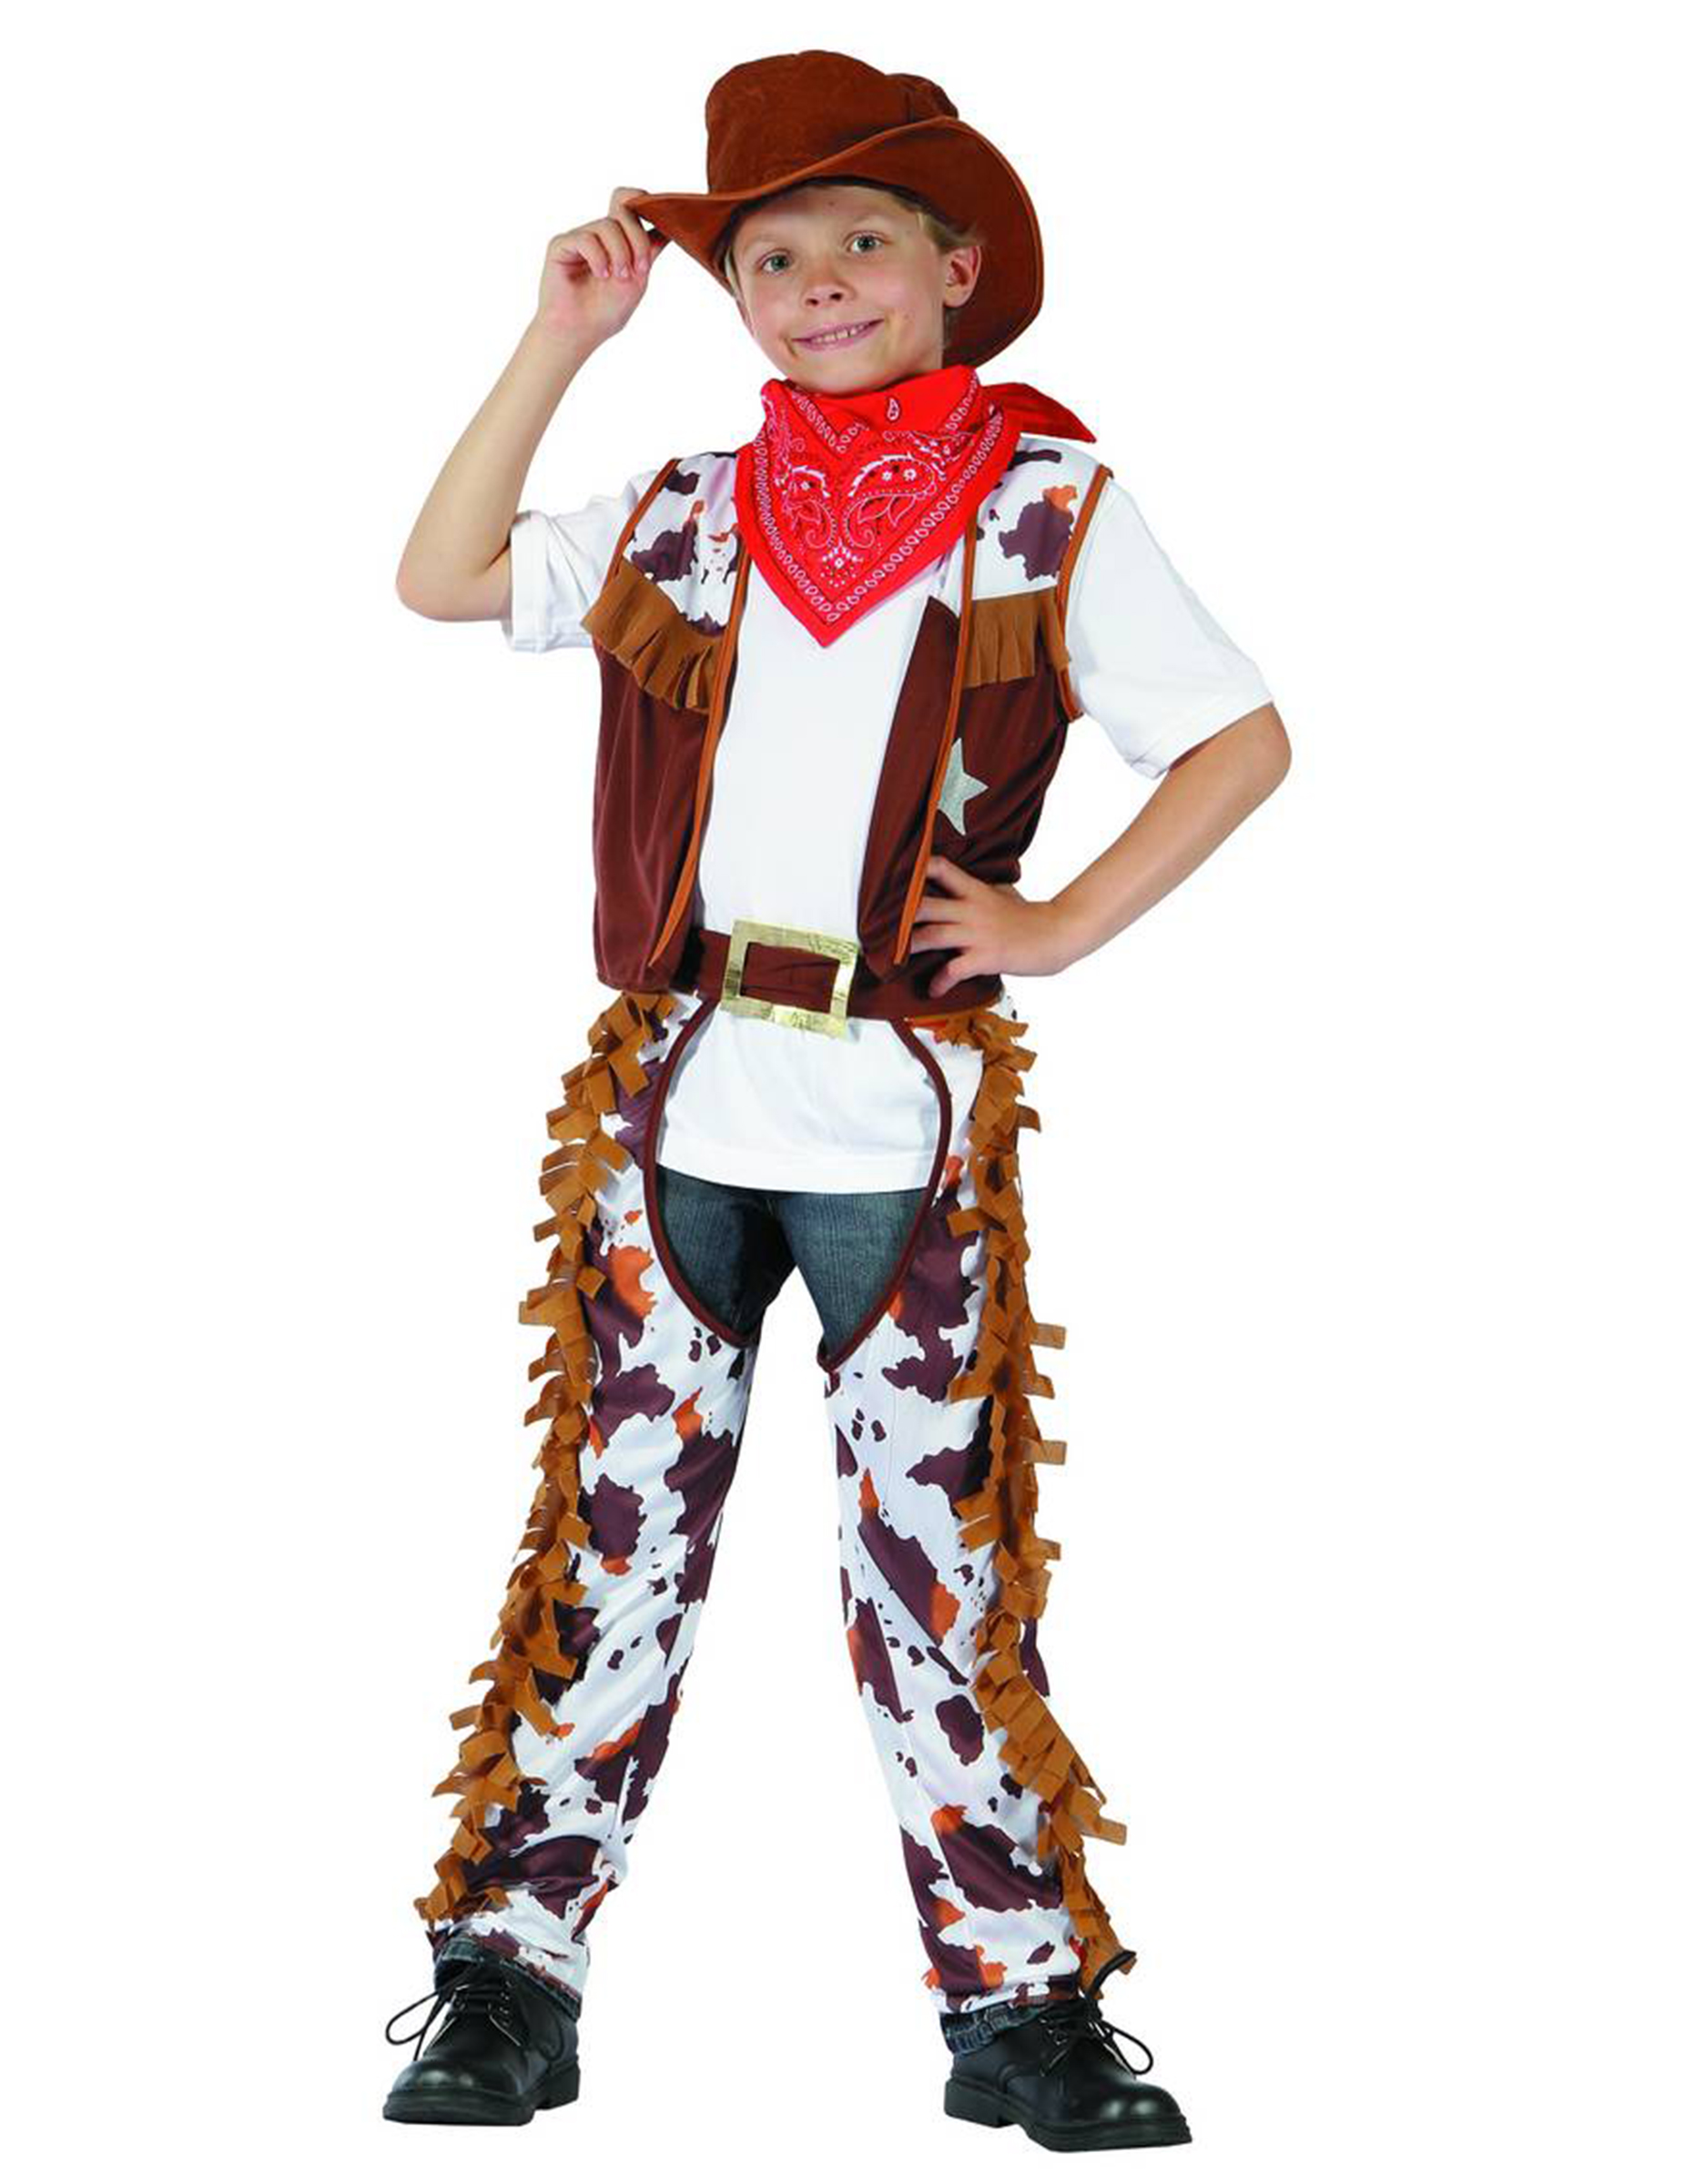 D guisement cowboy gar on - Deguisement cowboy enfant ...